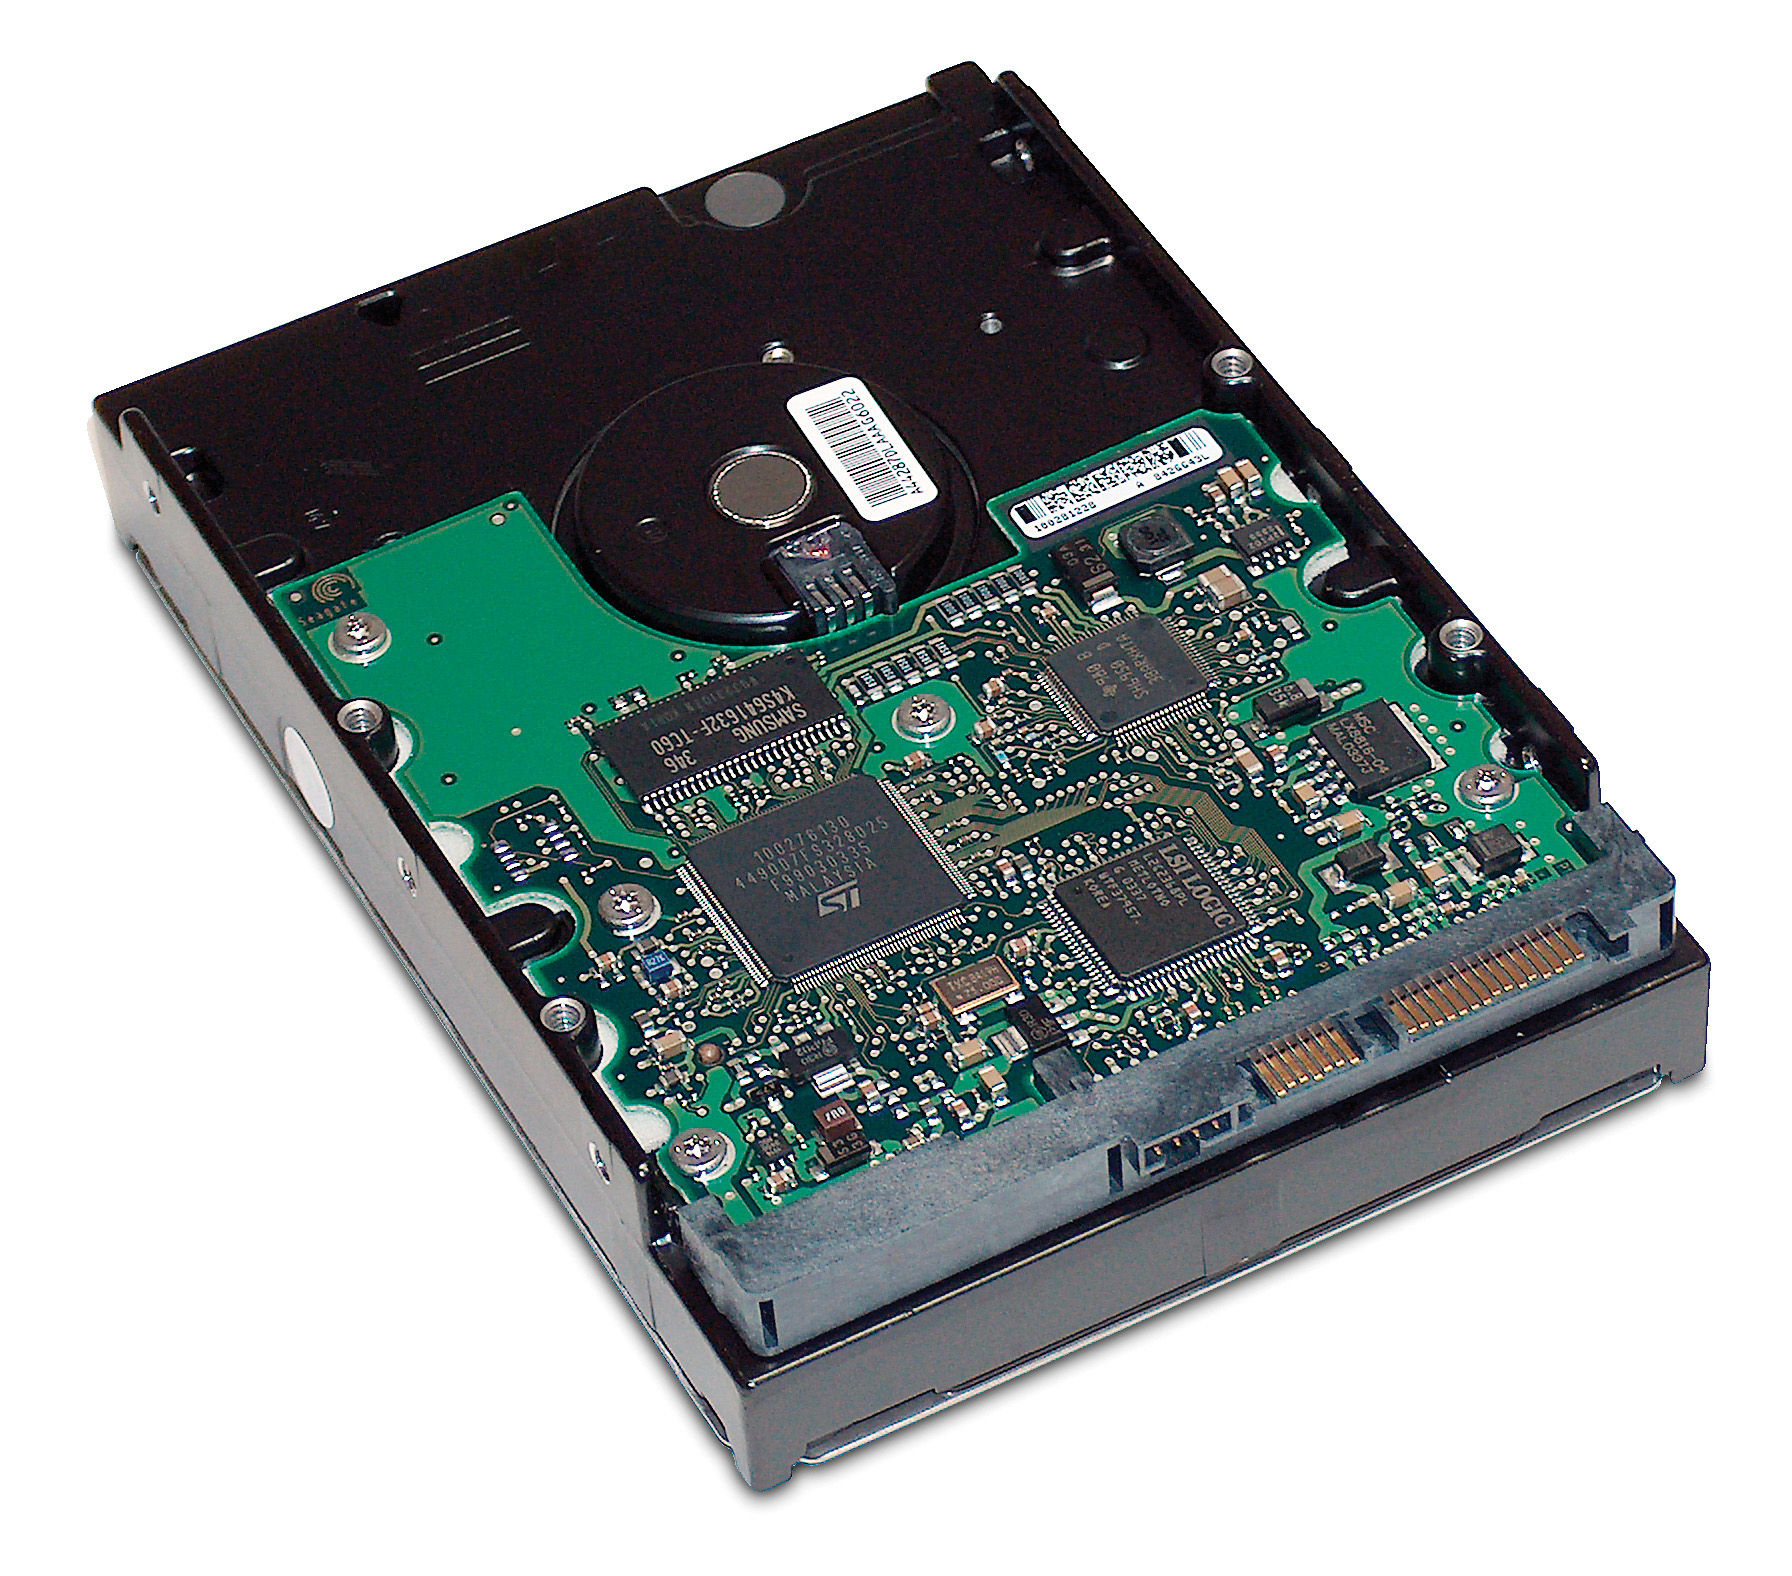 HP QB576AT 2TB SATA 6GB/S 7200 HARD DRIVE